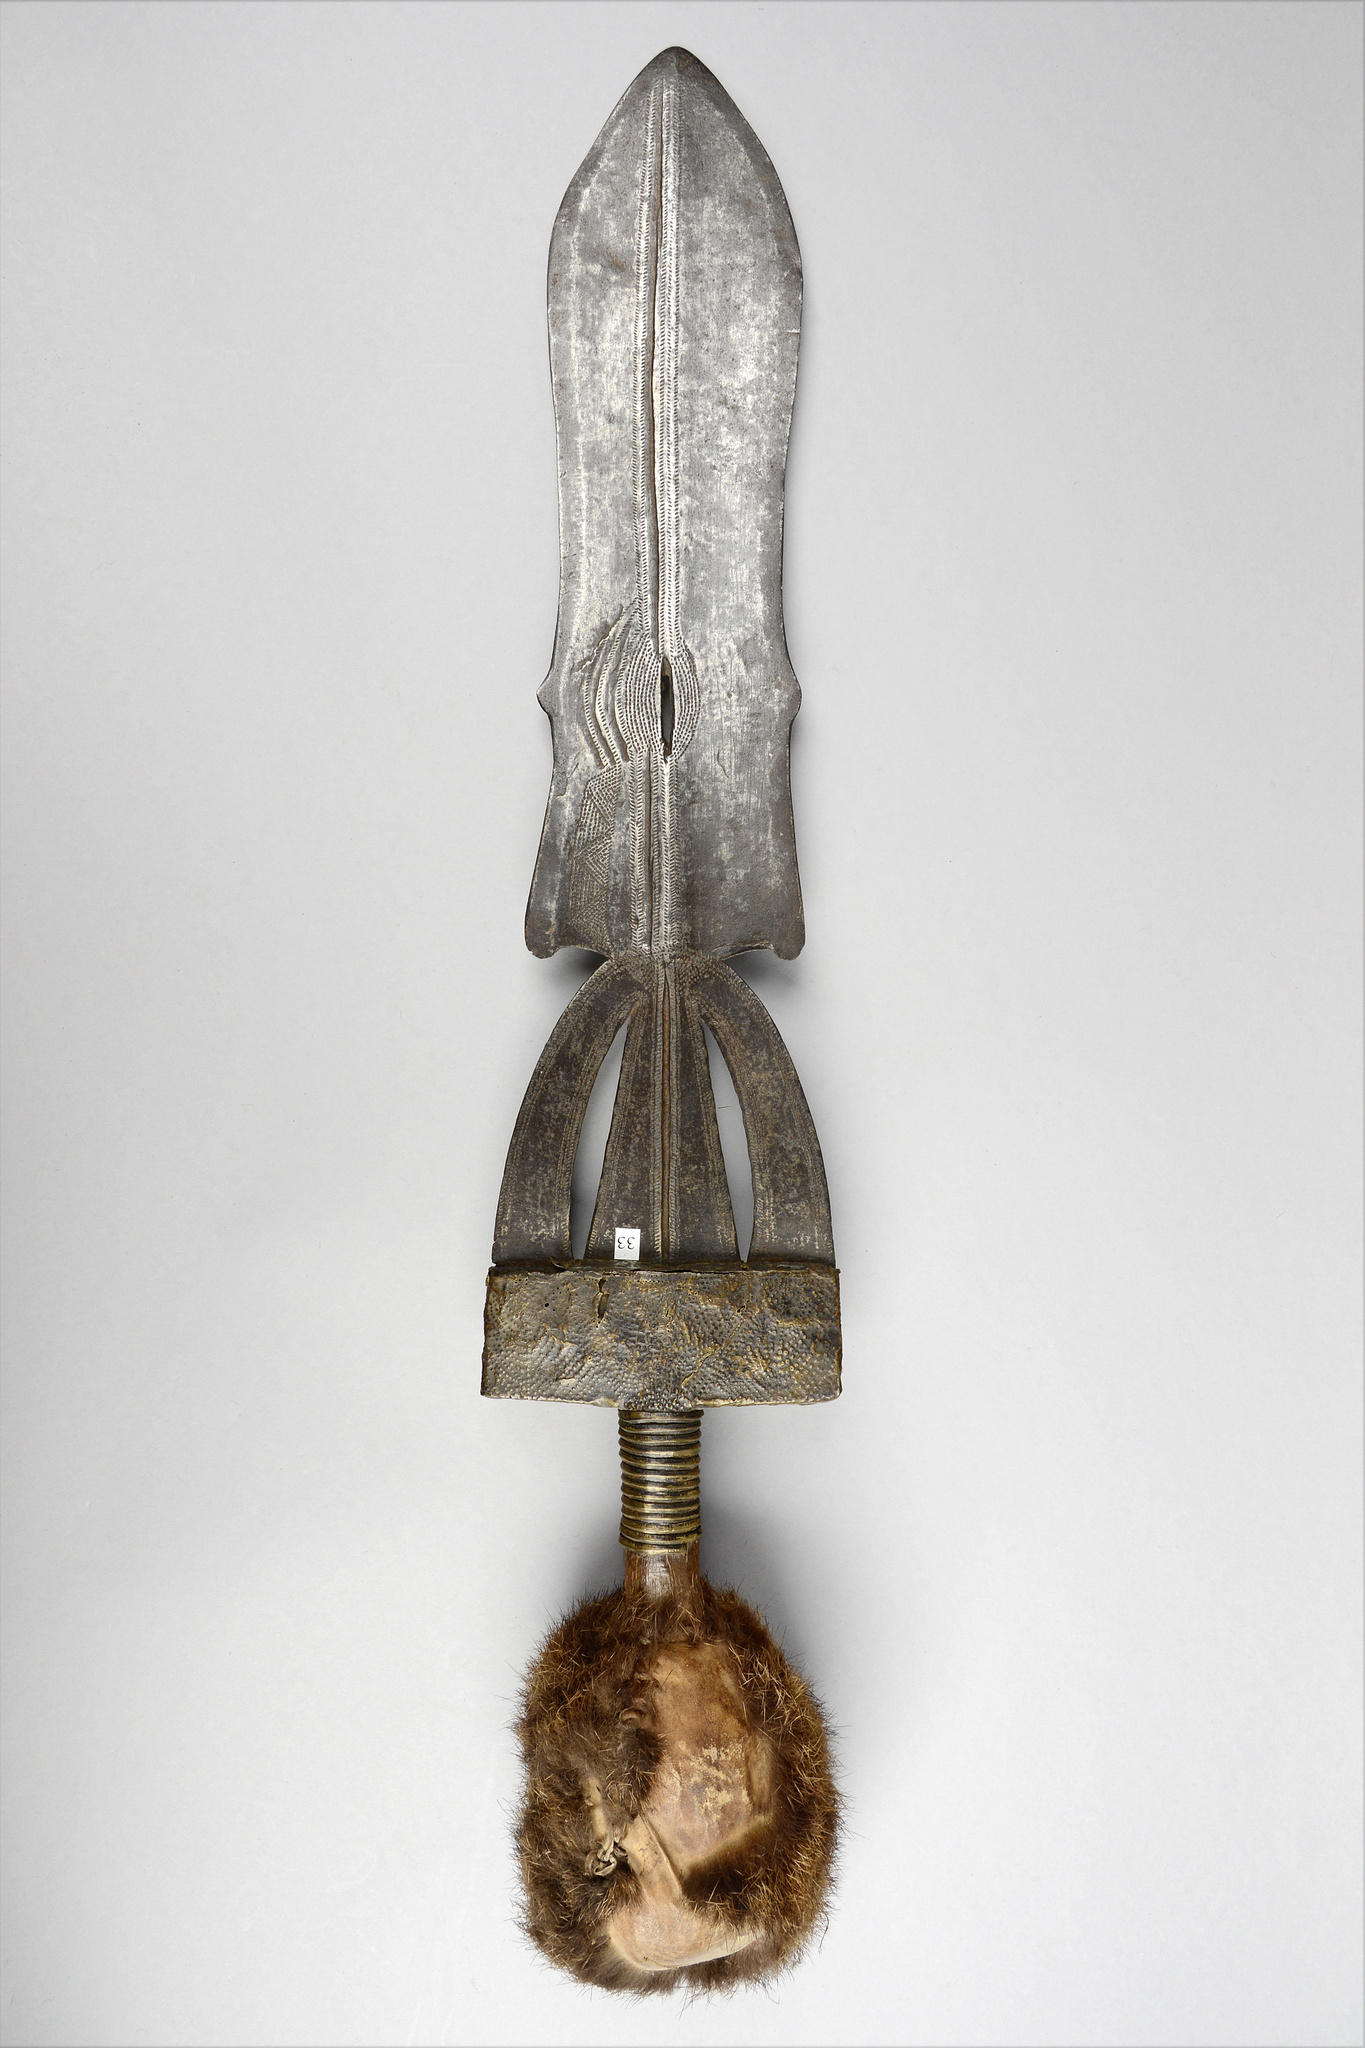 Sword knife with spherical fur knob